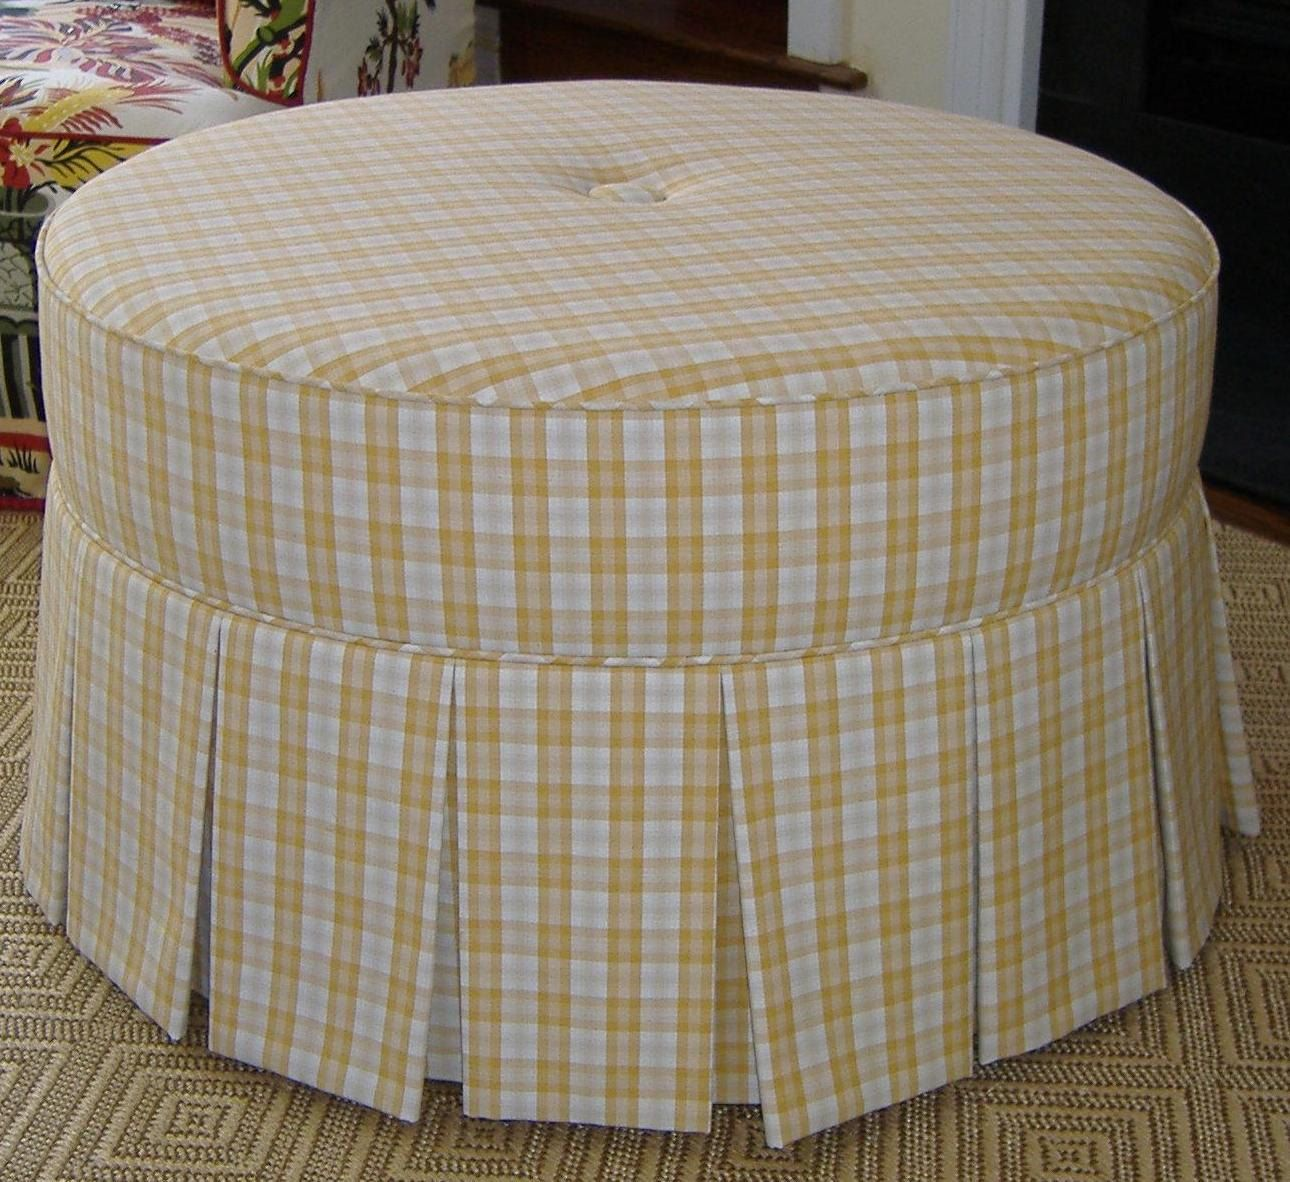 ottoman for living room%0A Custom Made Round Ottoman with Inverted Pleat Skirt and Button